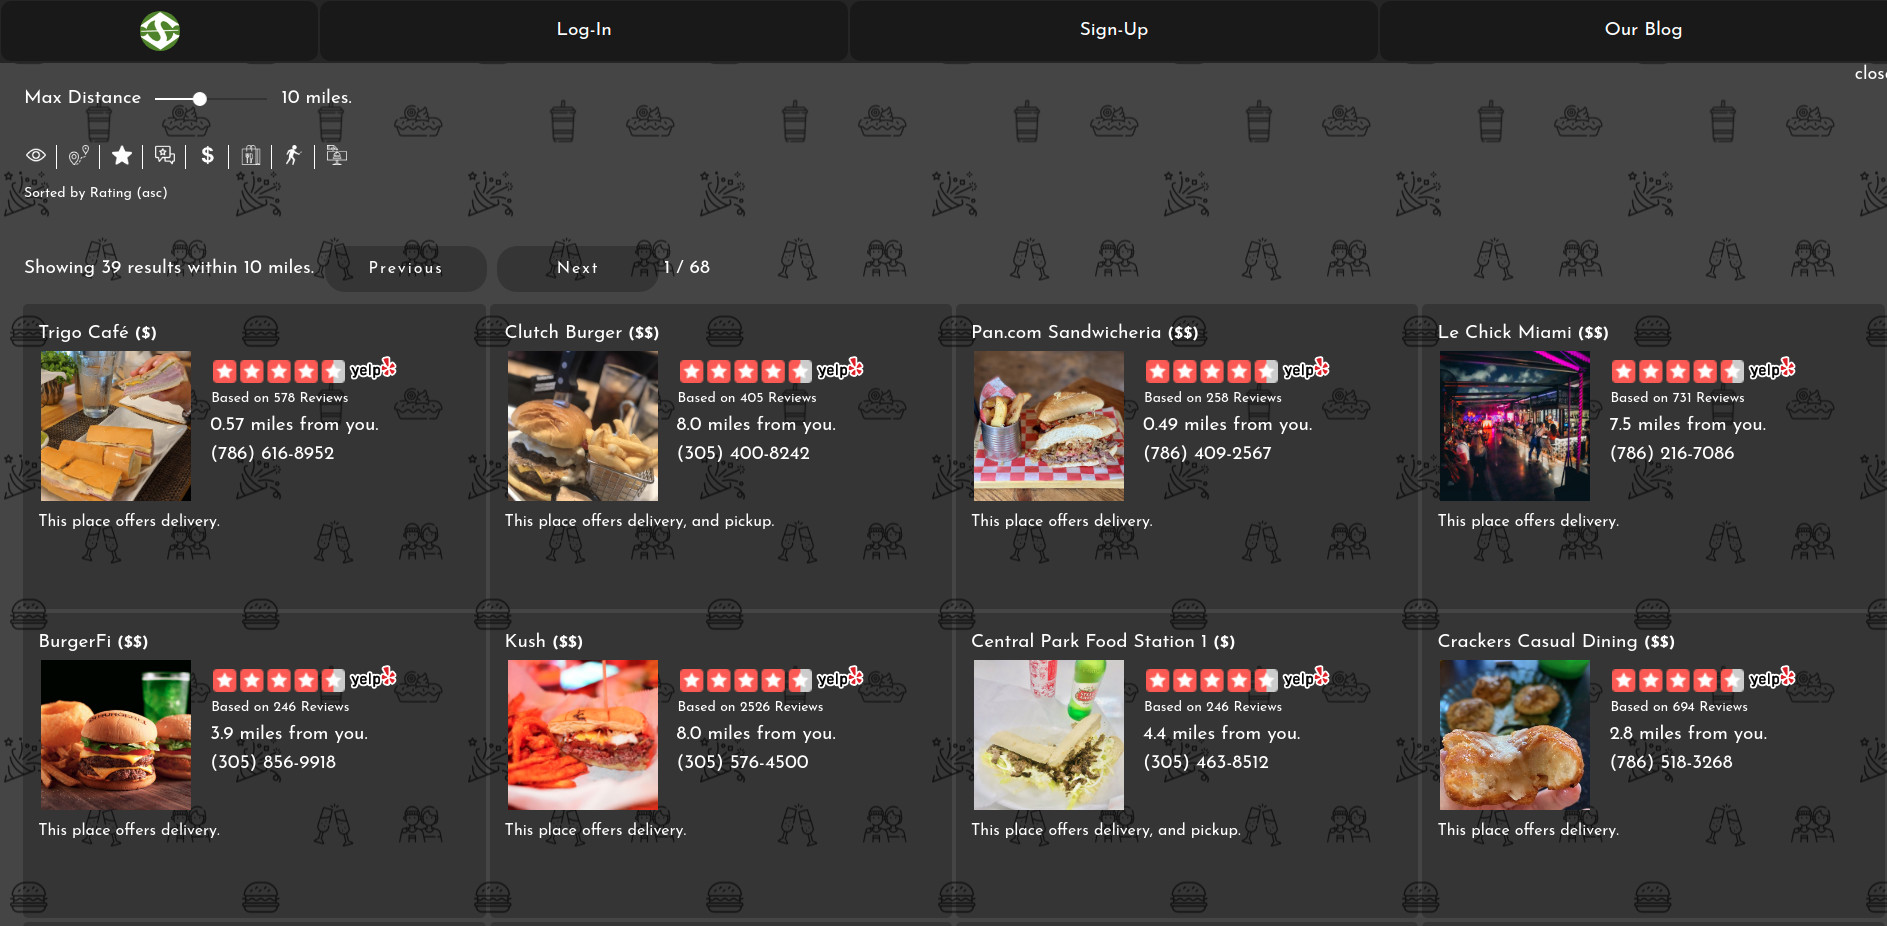 Picture of SpotBie user interface with a list display of places where to eat in South Florida.